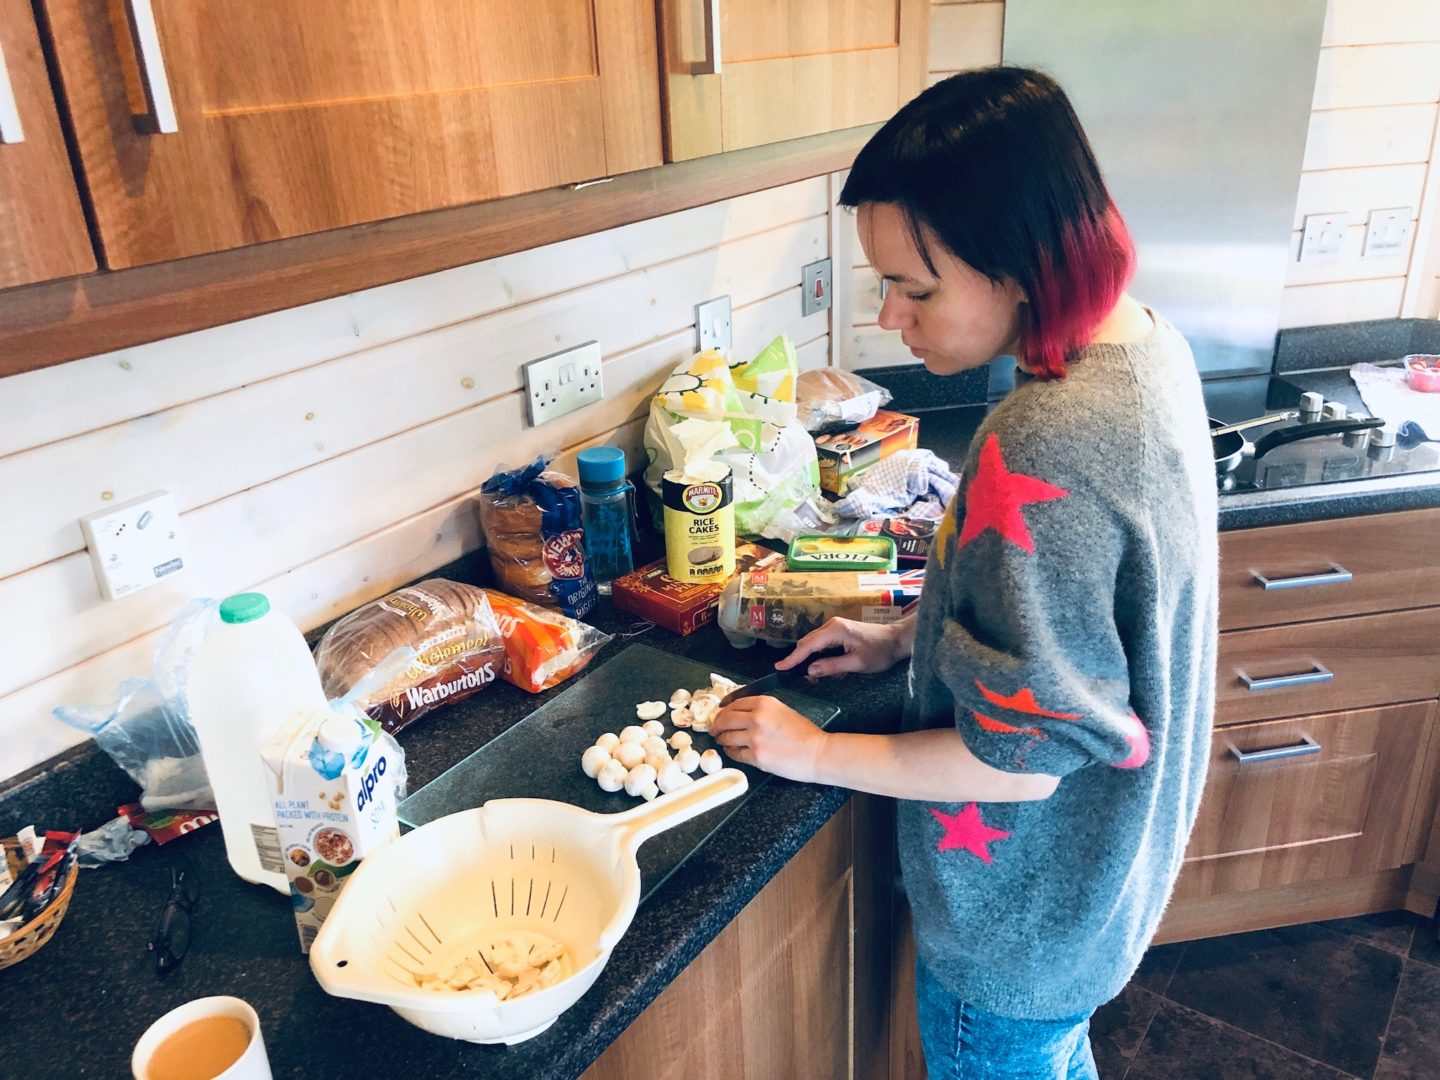 AD: Landal Sandybrook Peak District family review - a relaxing autumnal long weekend break. Making breakfast in the lodge kitchen.